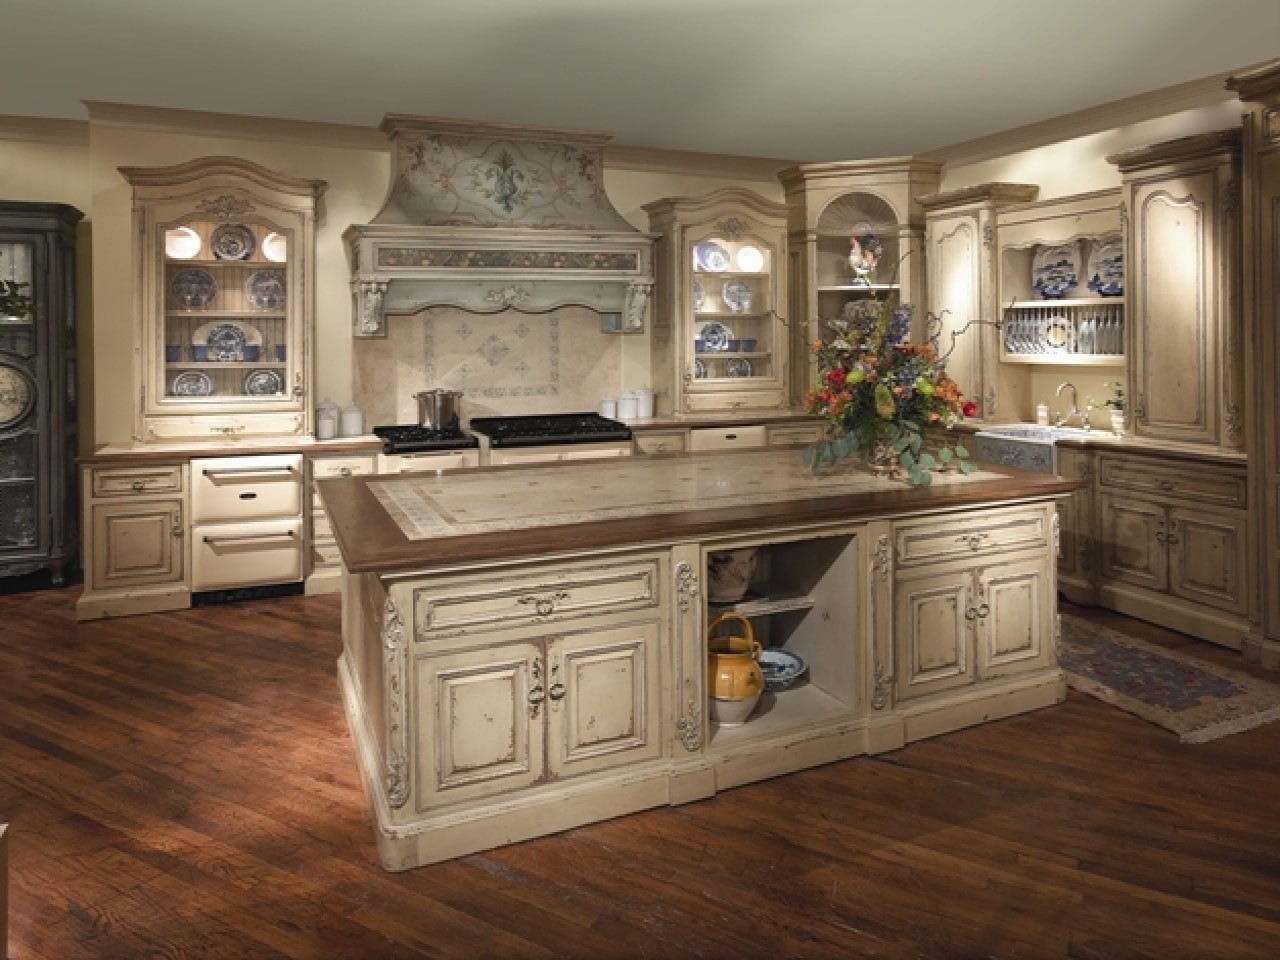 Captivating French Country Cabinets 1